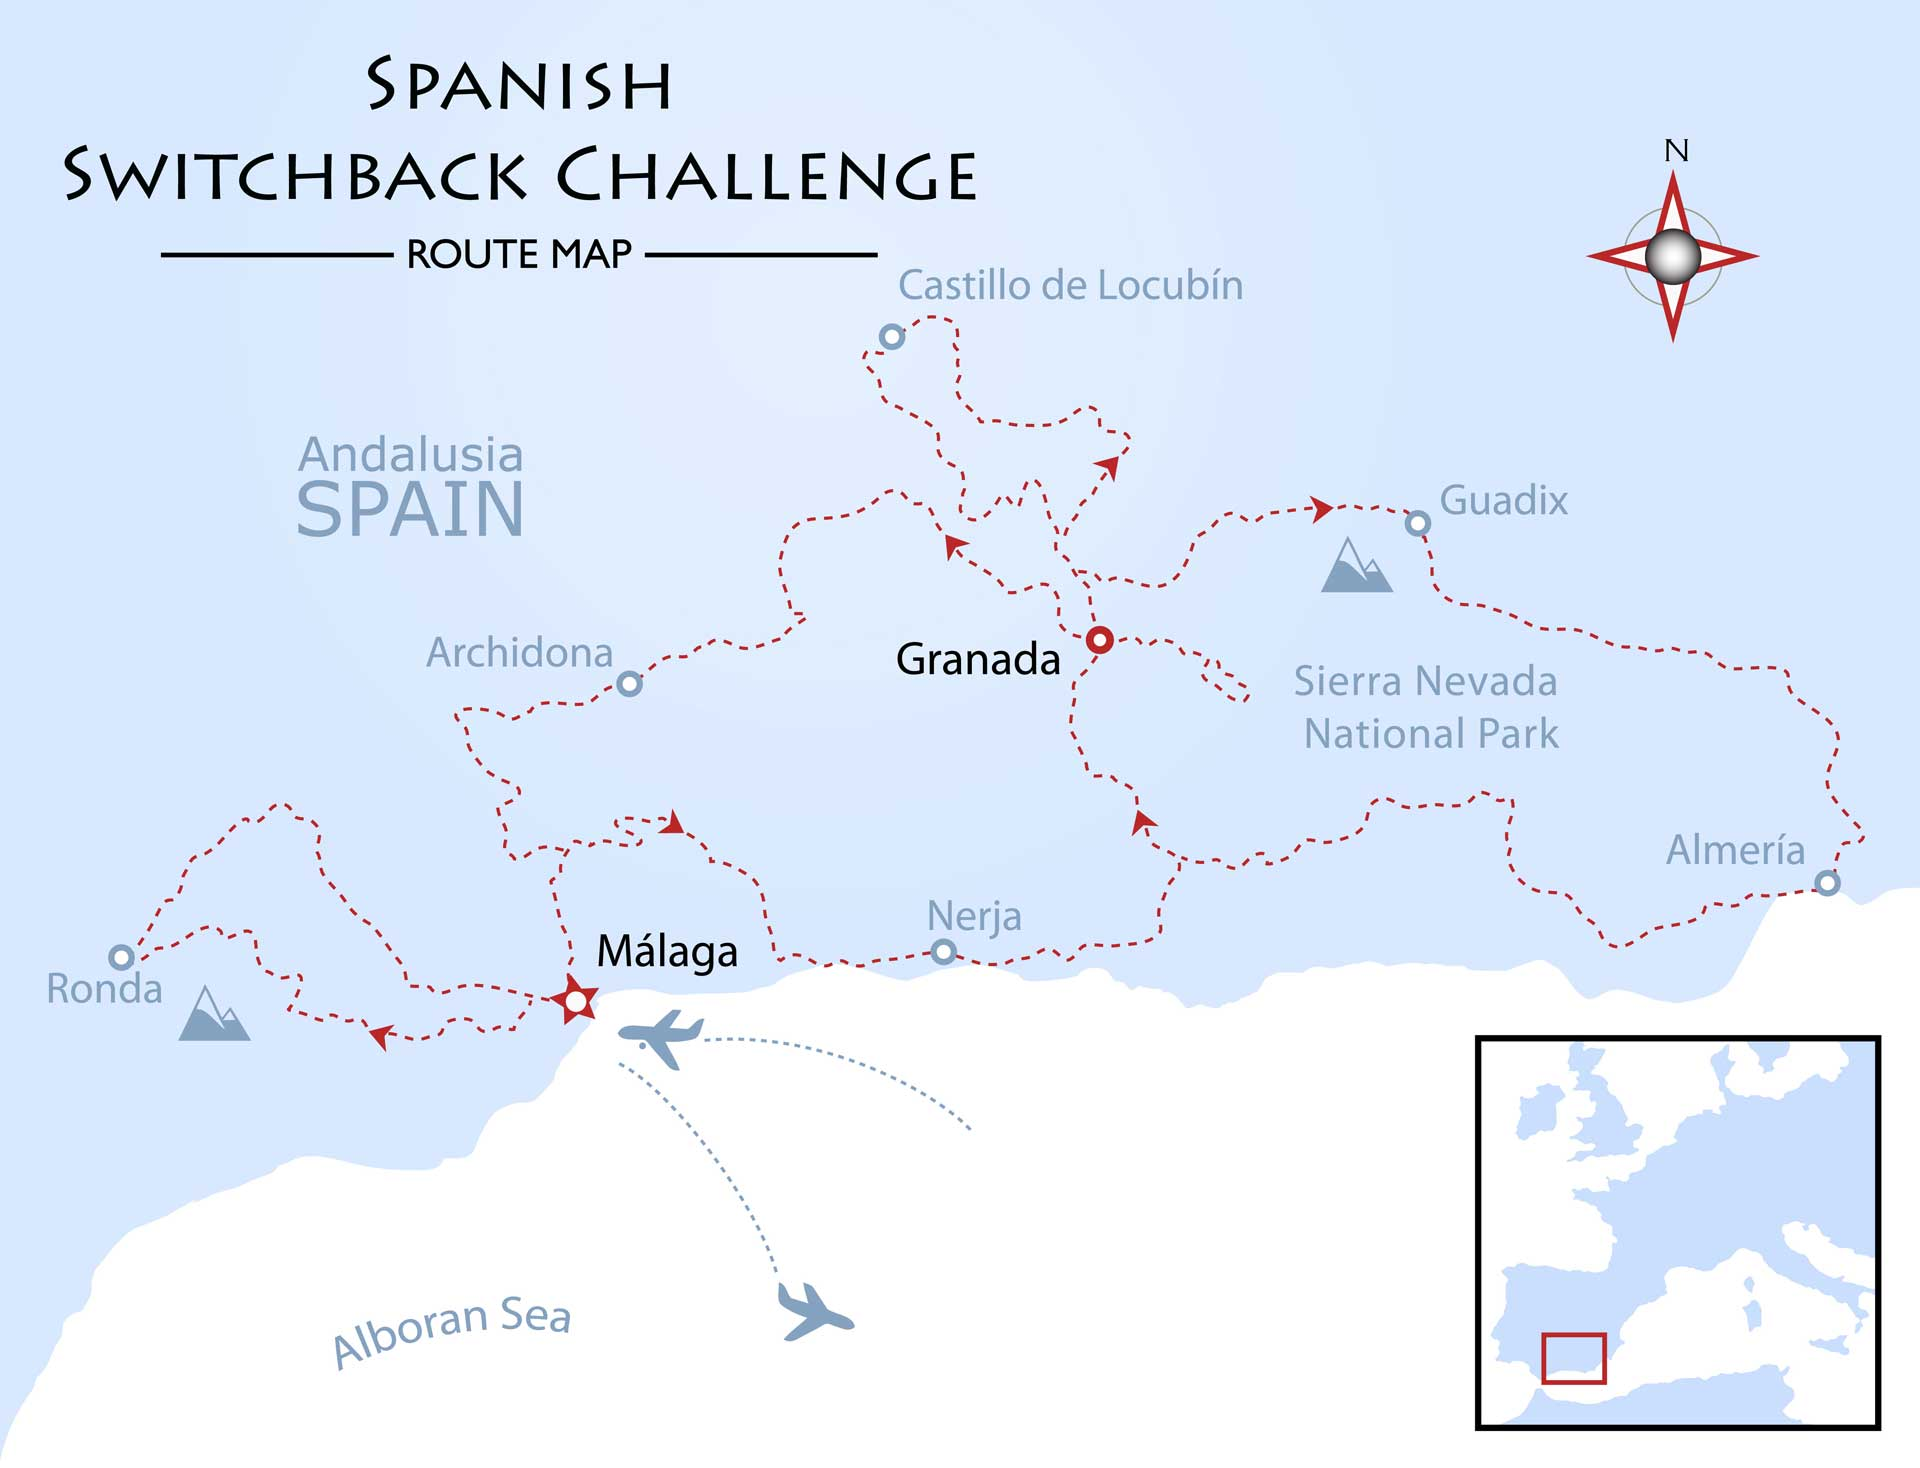 Spanish Switchback Challenge Map